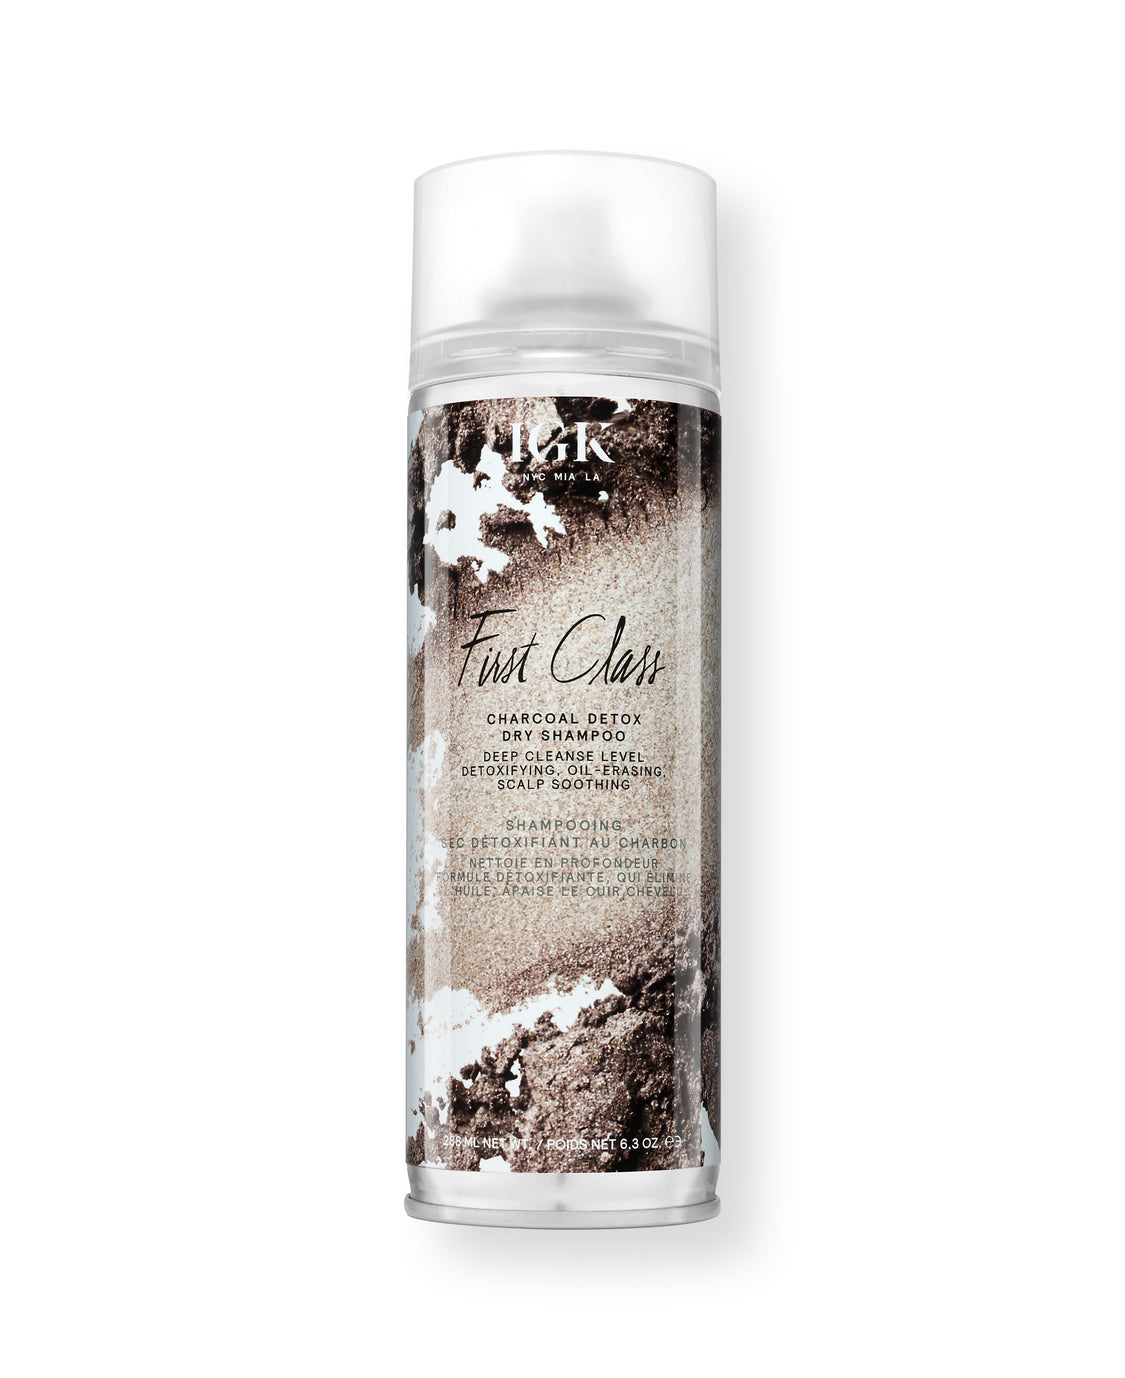 Image result for Dry shampoo (IGK First Class